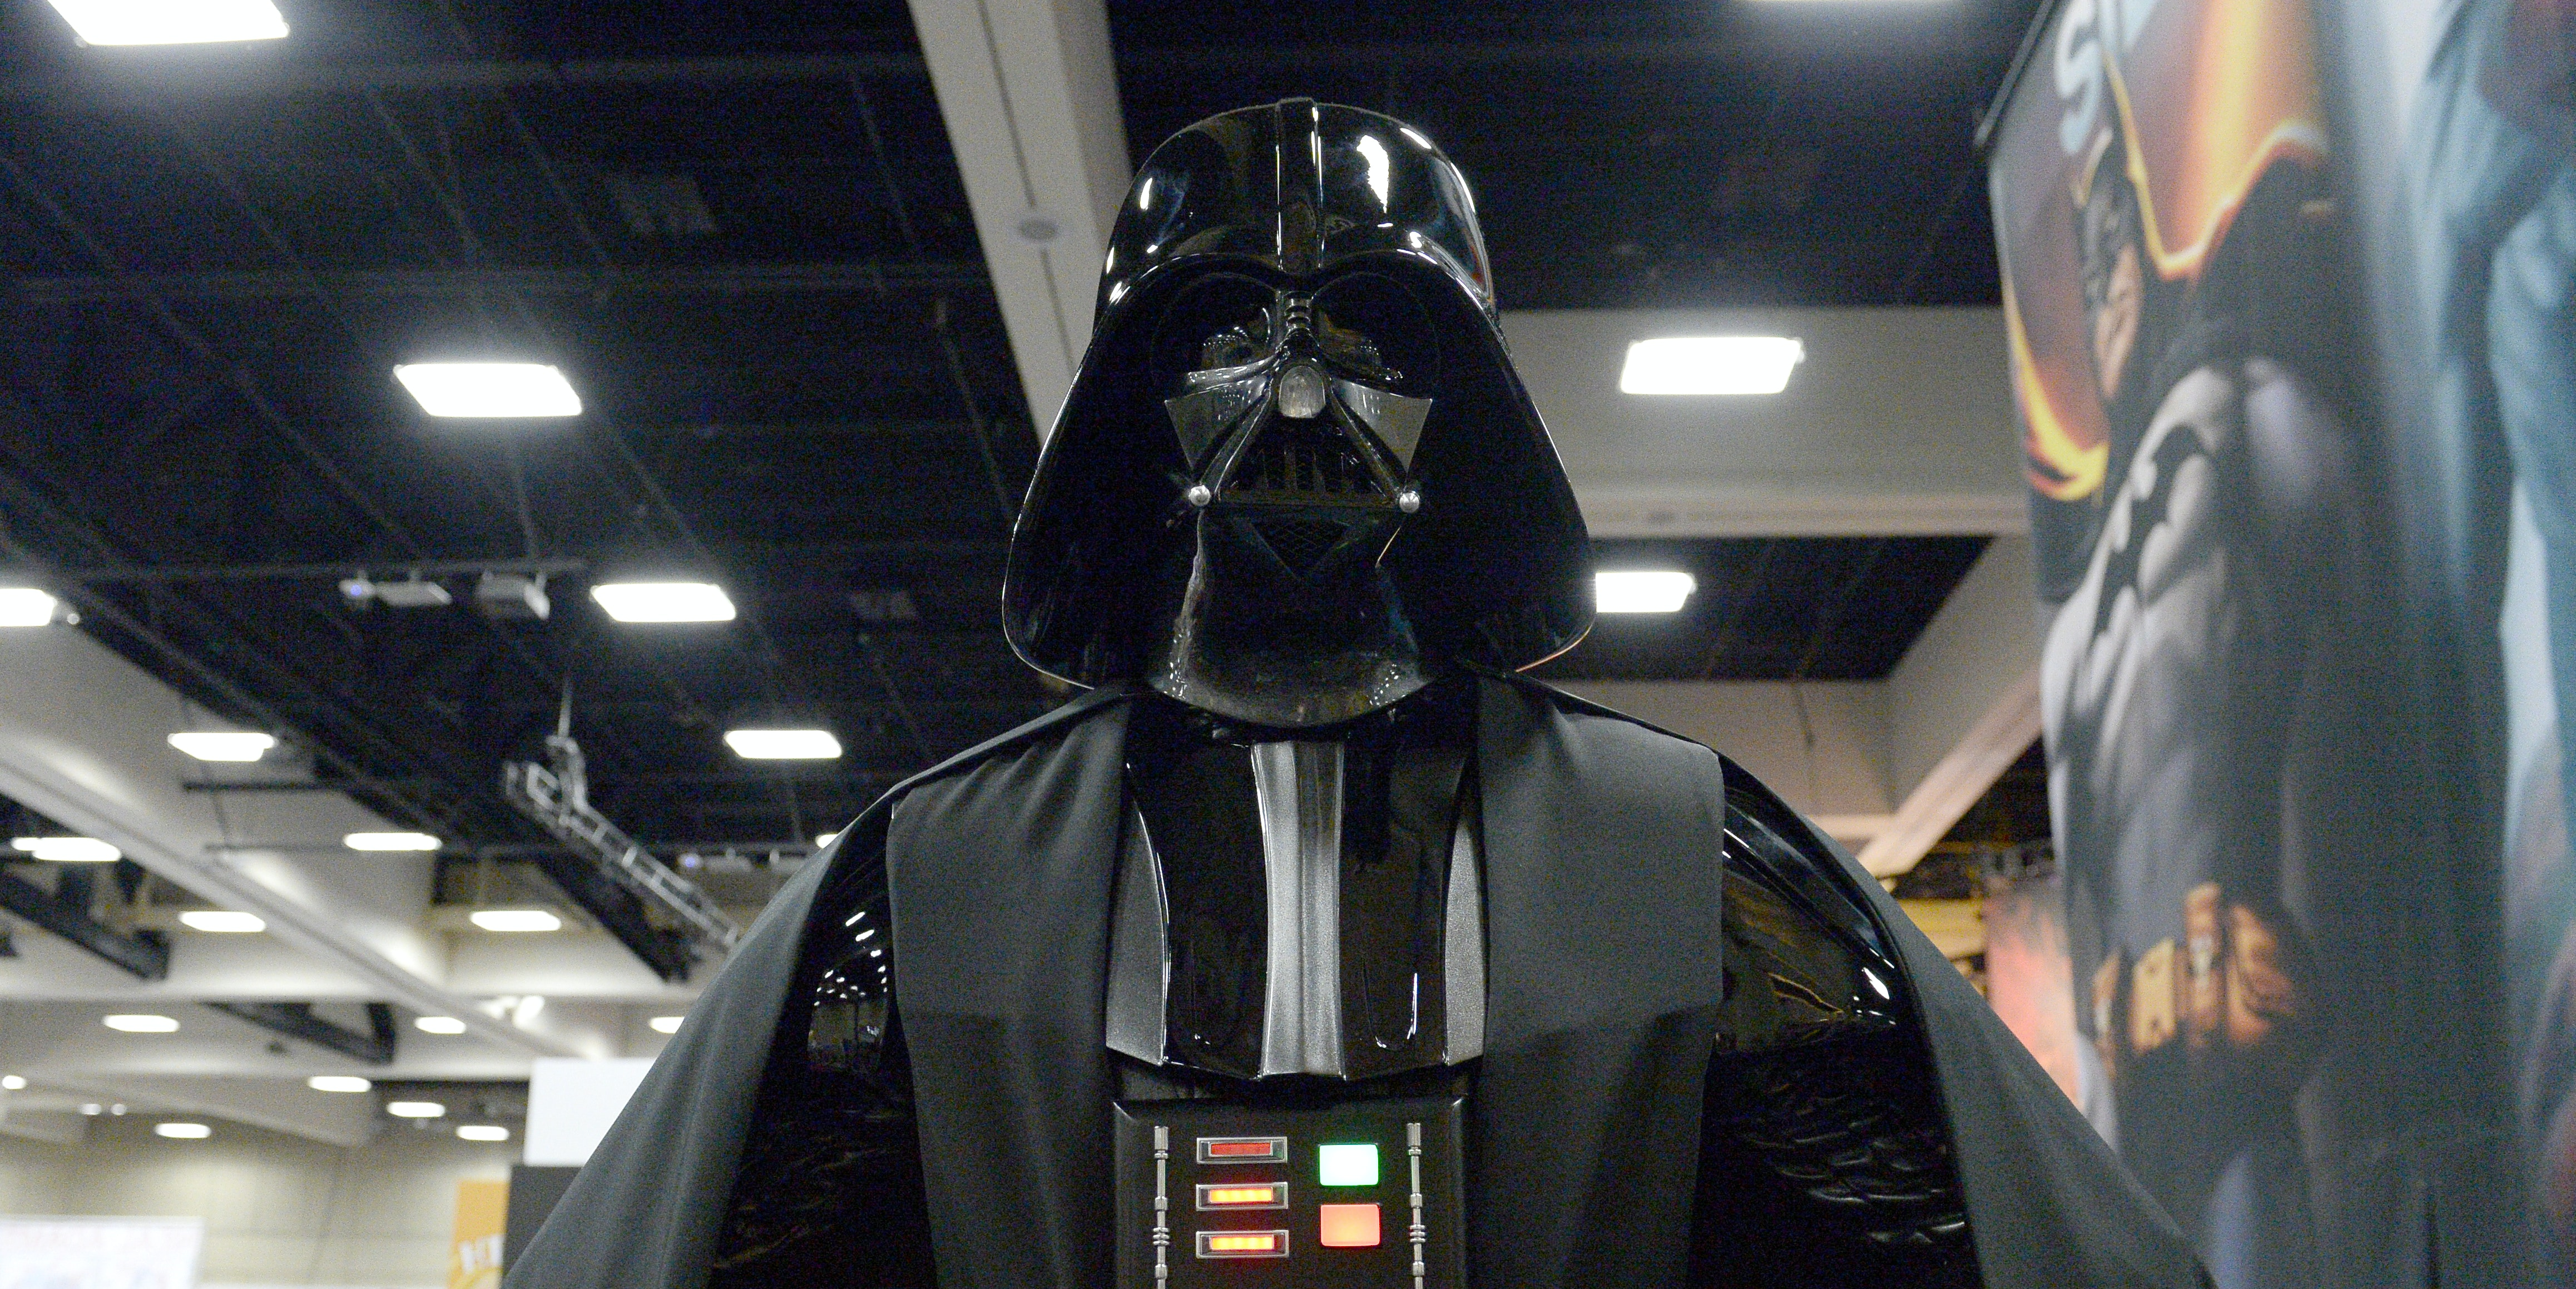 SAN DIEGO, CA - JULY 20:  Darth Vader cosplayer attends Comic-Con International 2016 preview night on July 20, 2016 in San Diego, California.  (Photo by Matt Cowan/Getty Images)